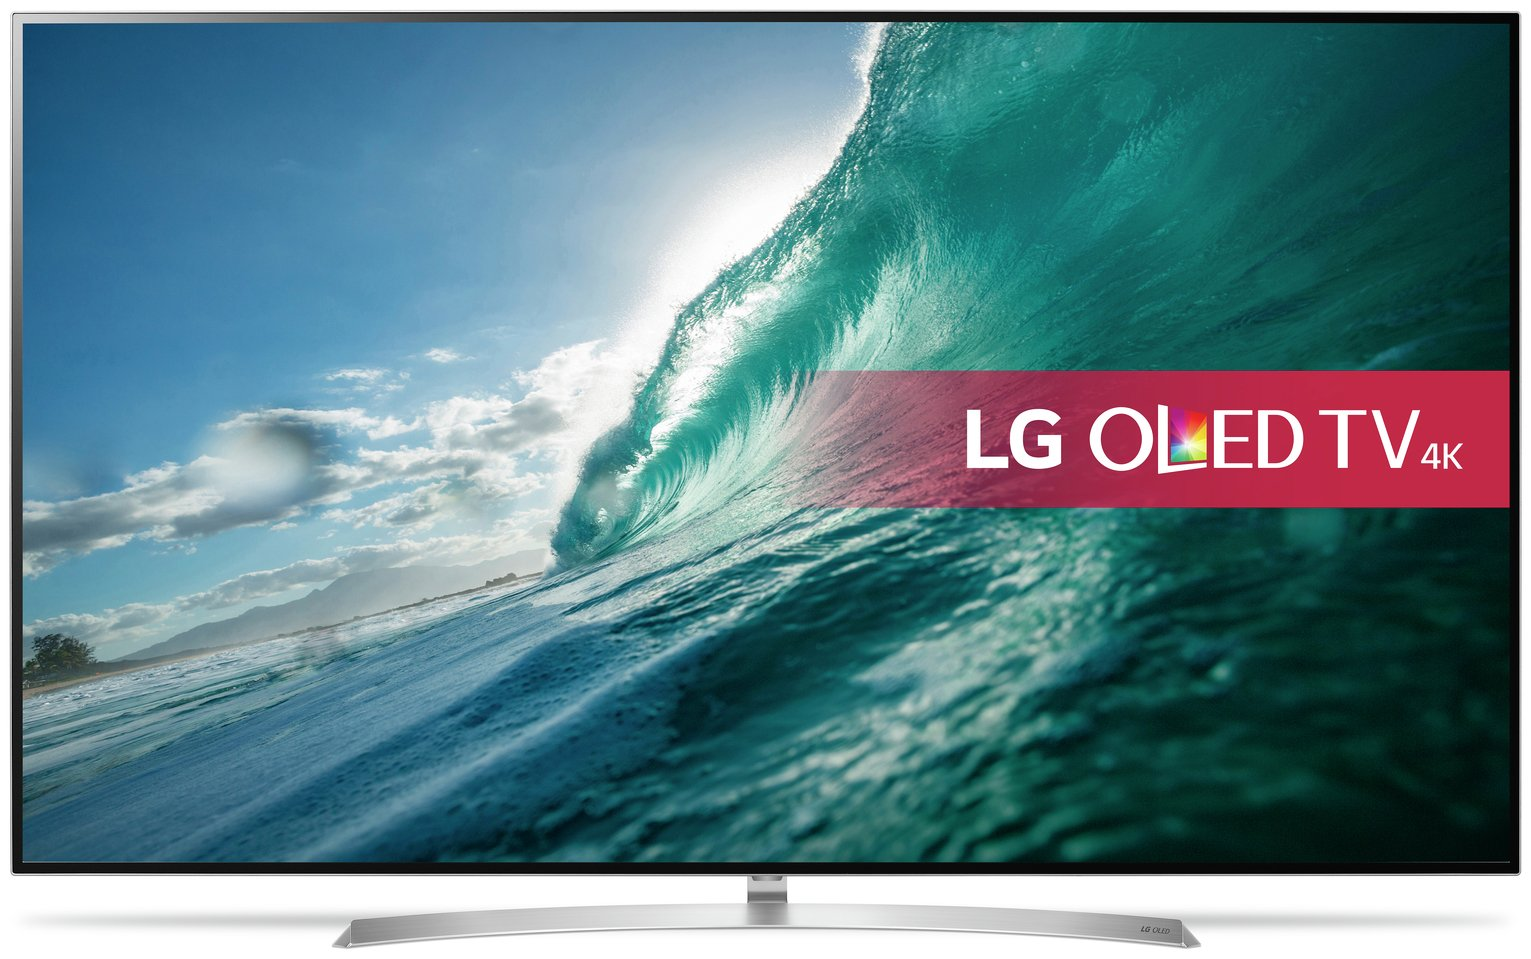 Image of LG OLED55B7V 55 Inch Smart OLED 4K Ultra HD TV with HDR